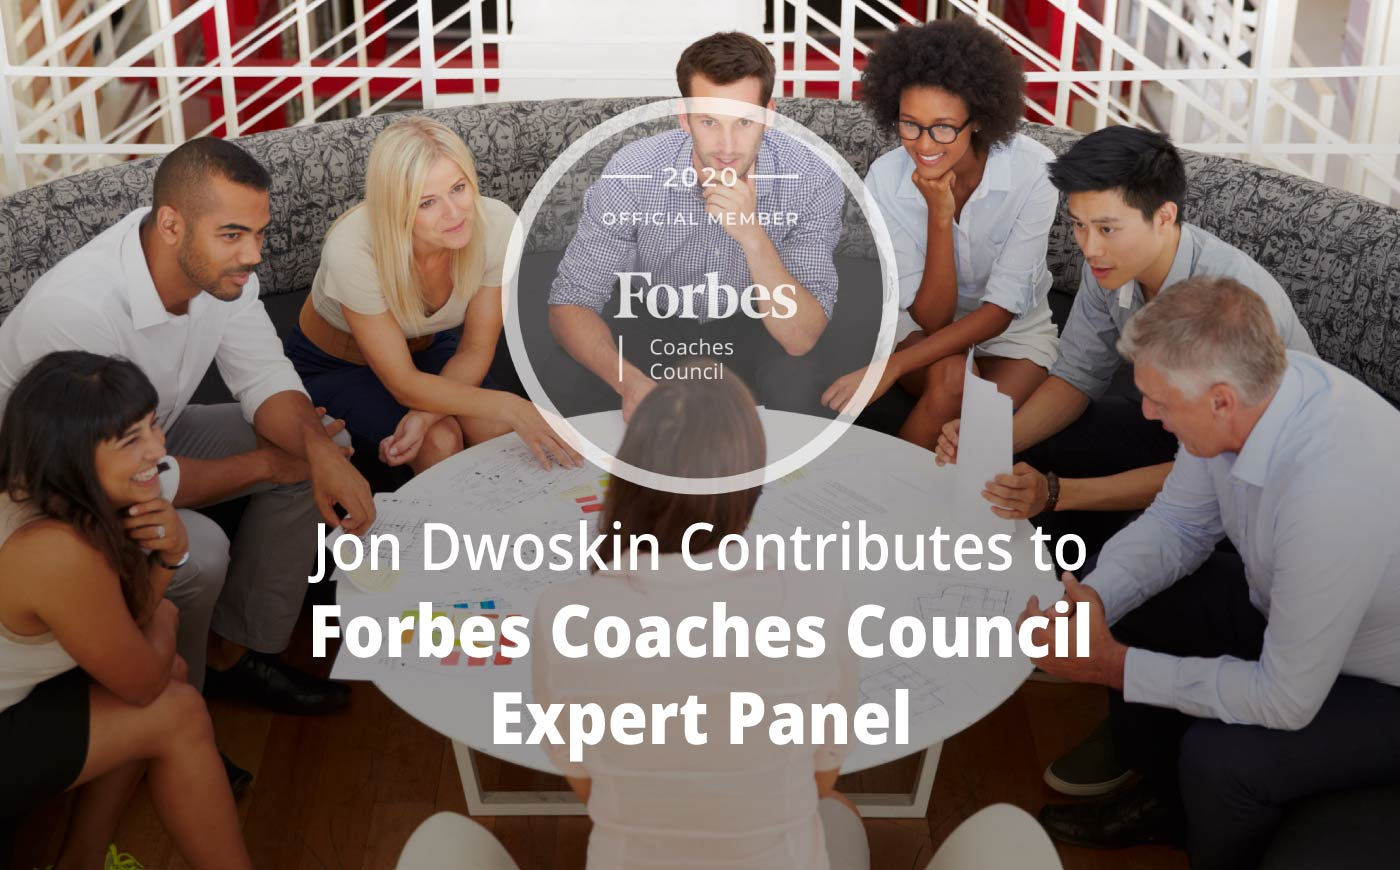 Jon Contributes to Forbes Coaches Council Expert Panel: 11 Practical Ways To Build A Diverse Network Of Professional Connections